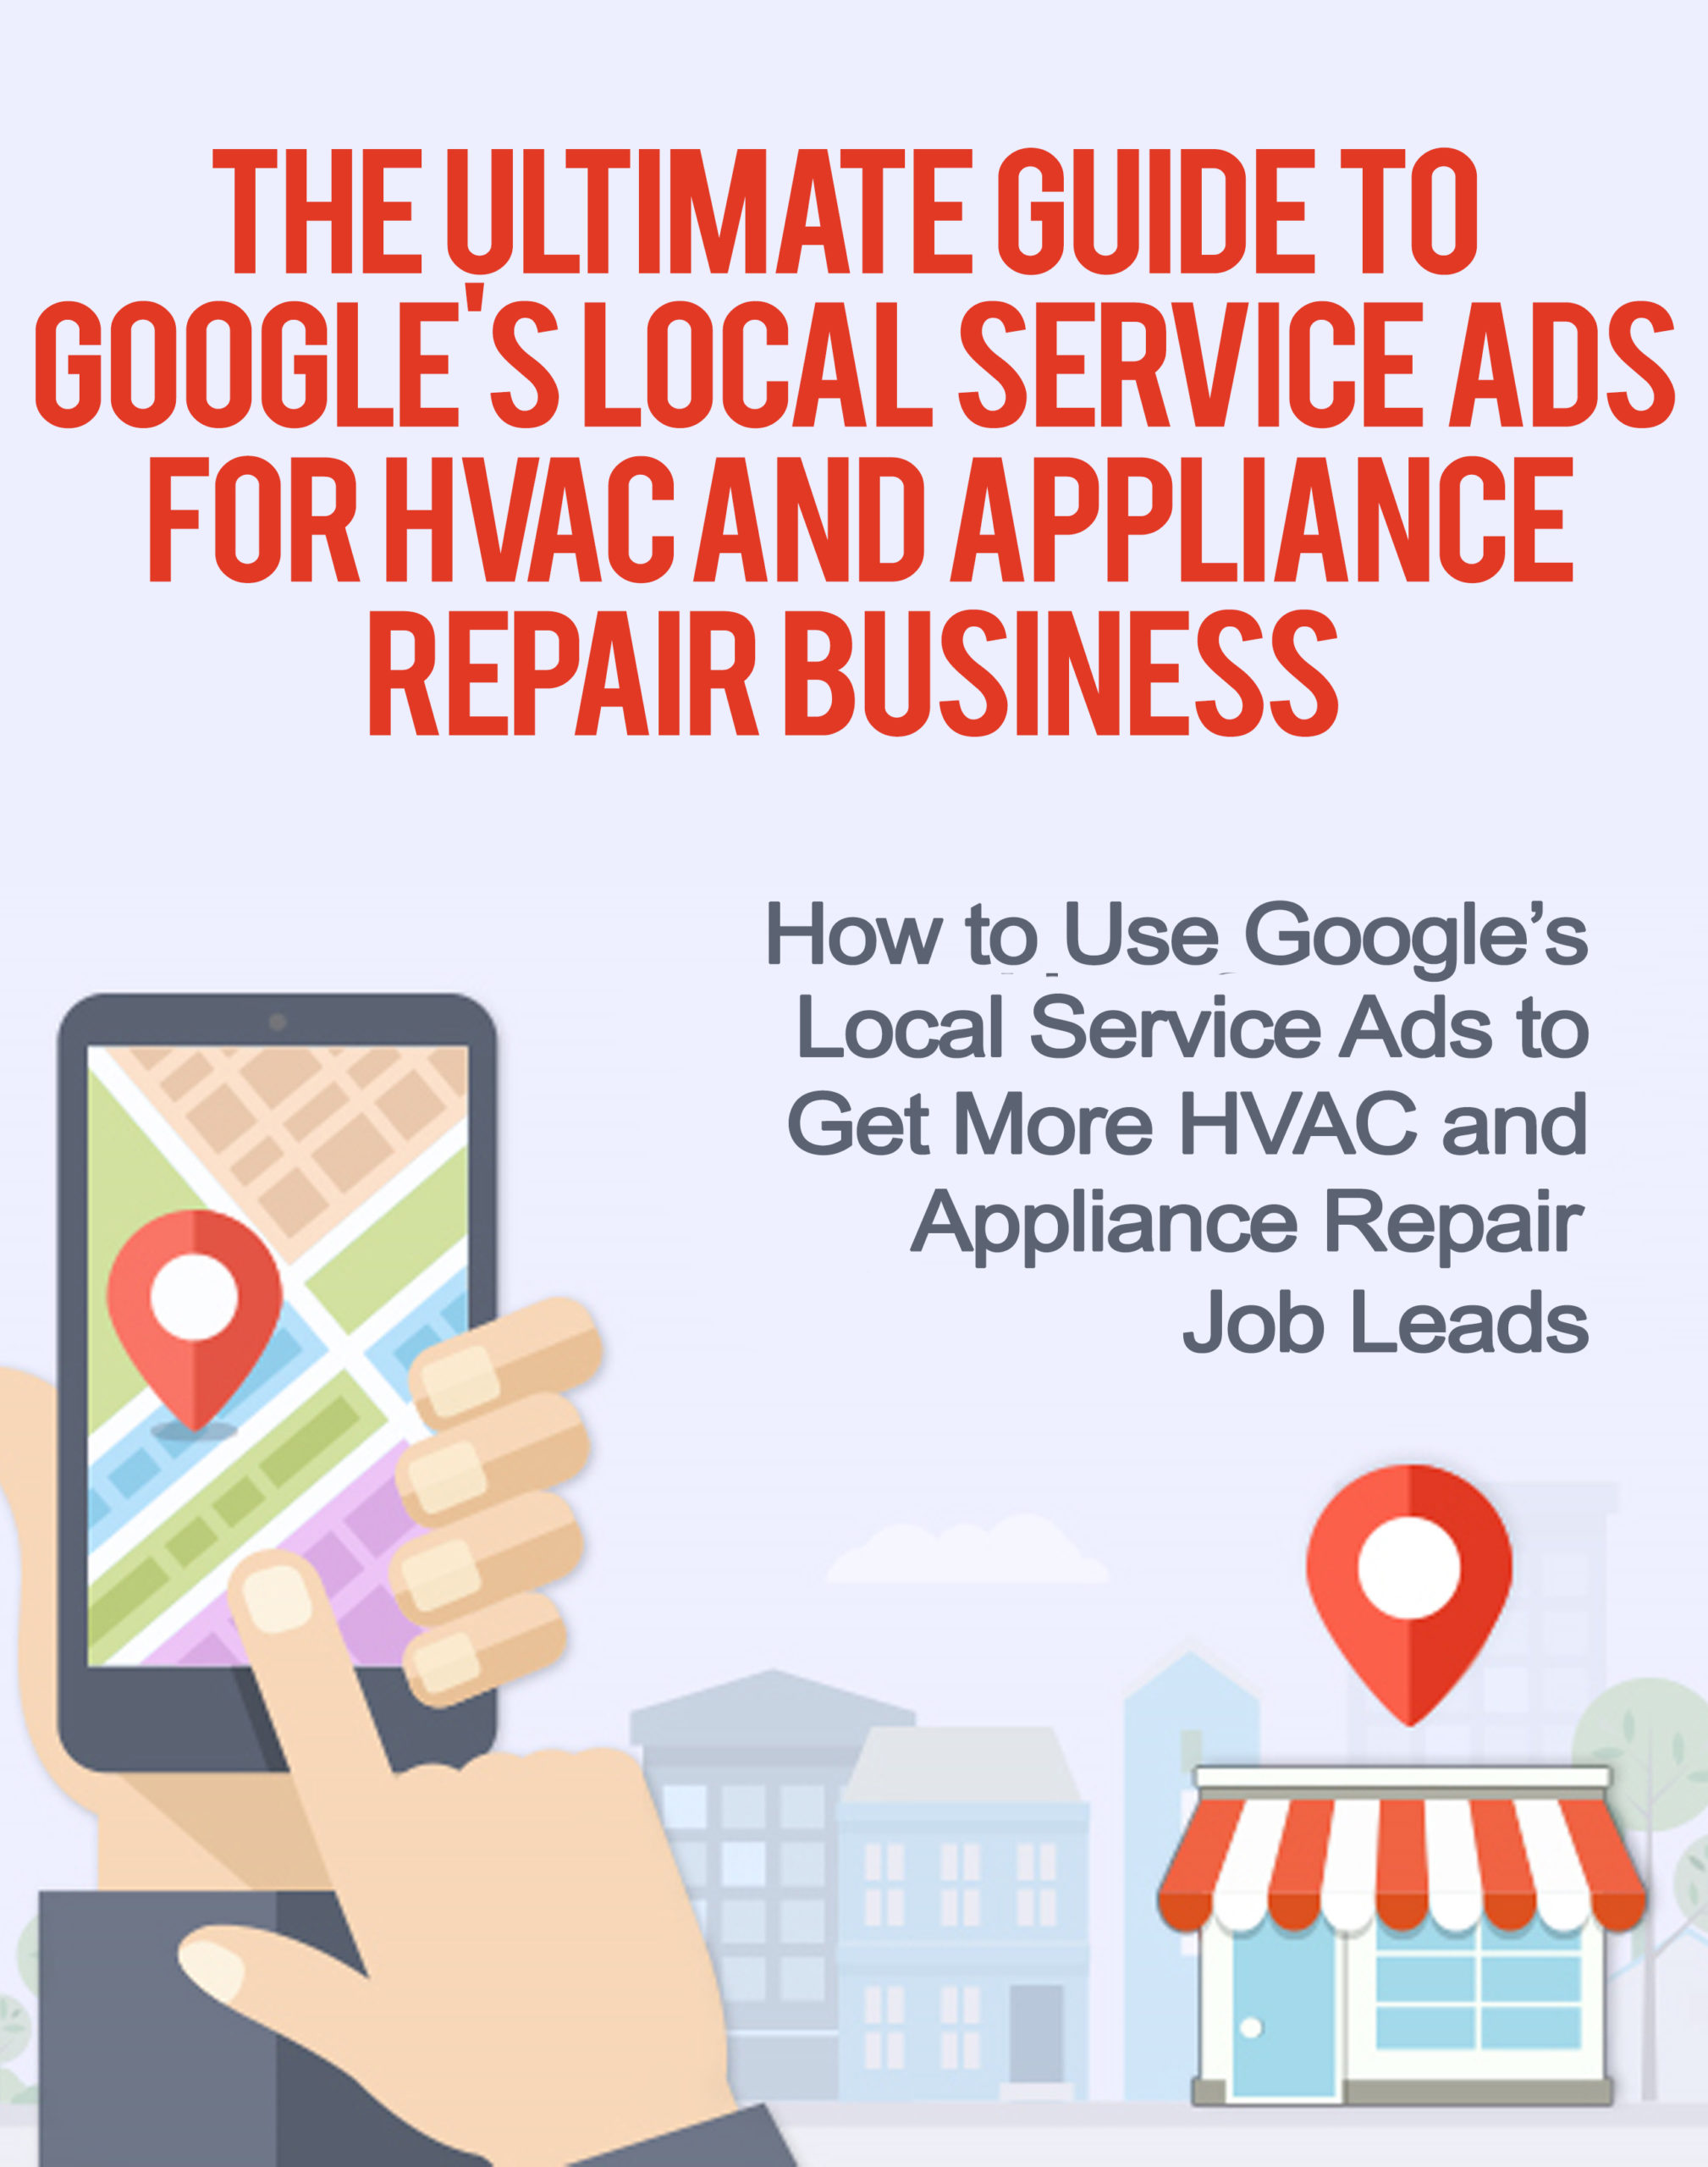 hvac leads & appliance repair lead generation